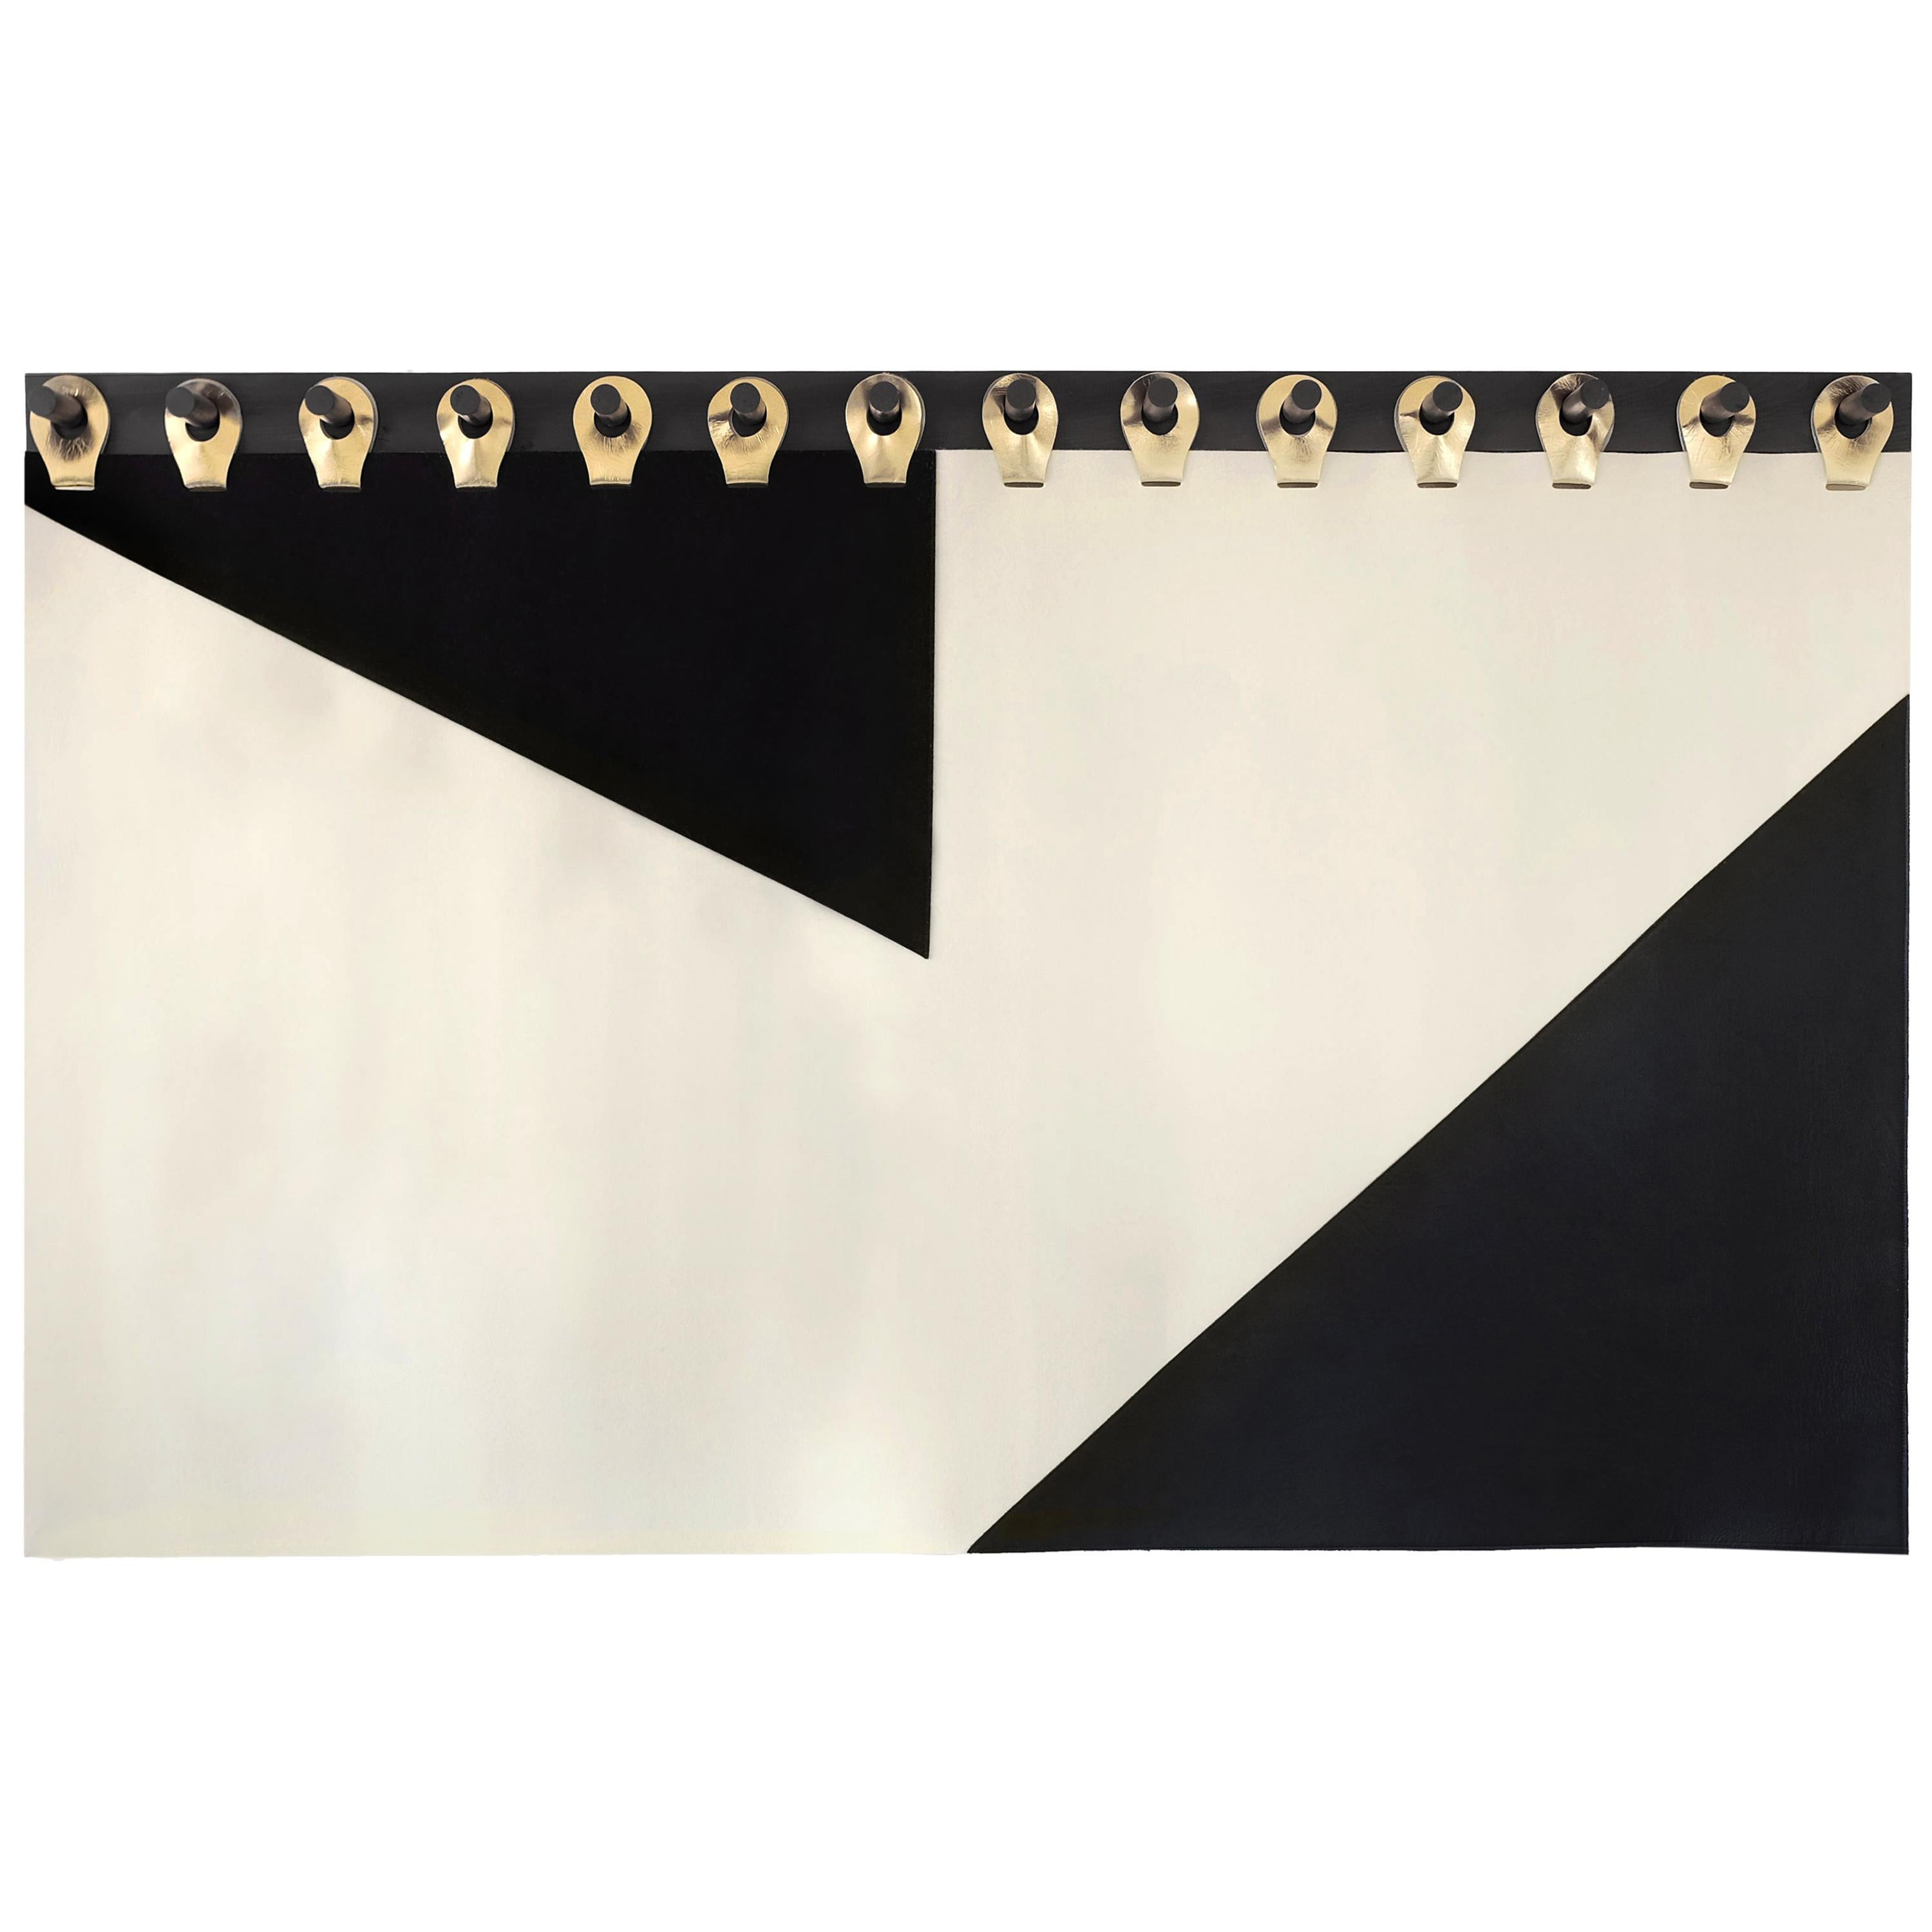 """Ingles Headboard Tapestry 84"""" in Black, Cream and Gold by Moses Nadel"""